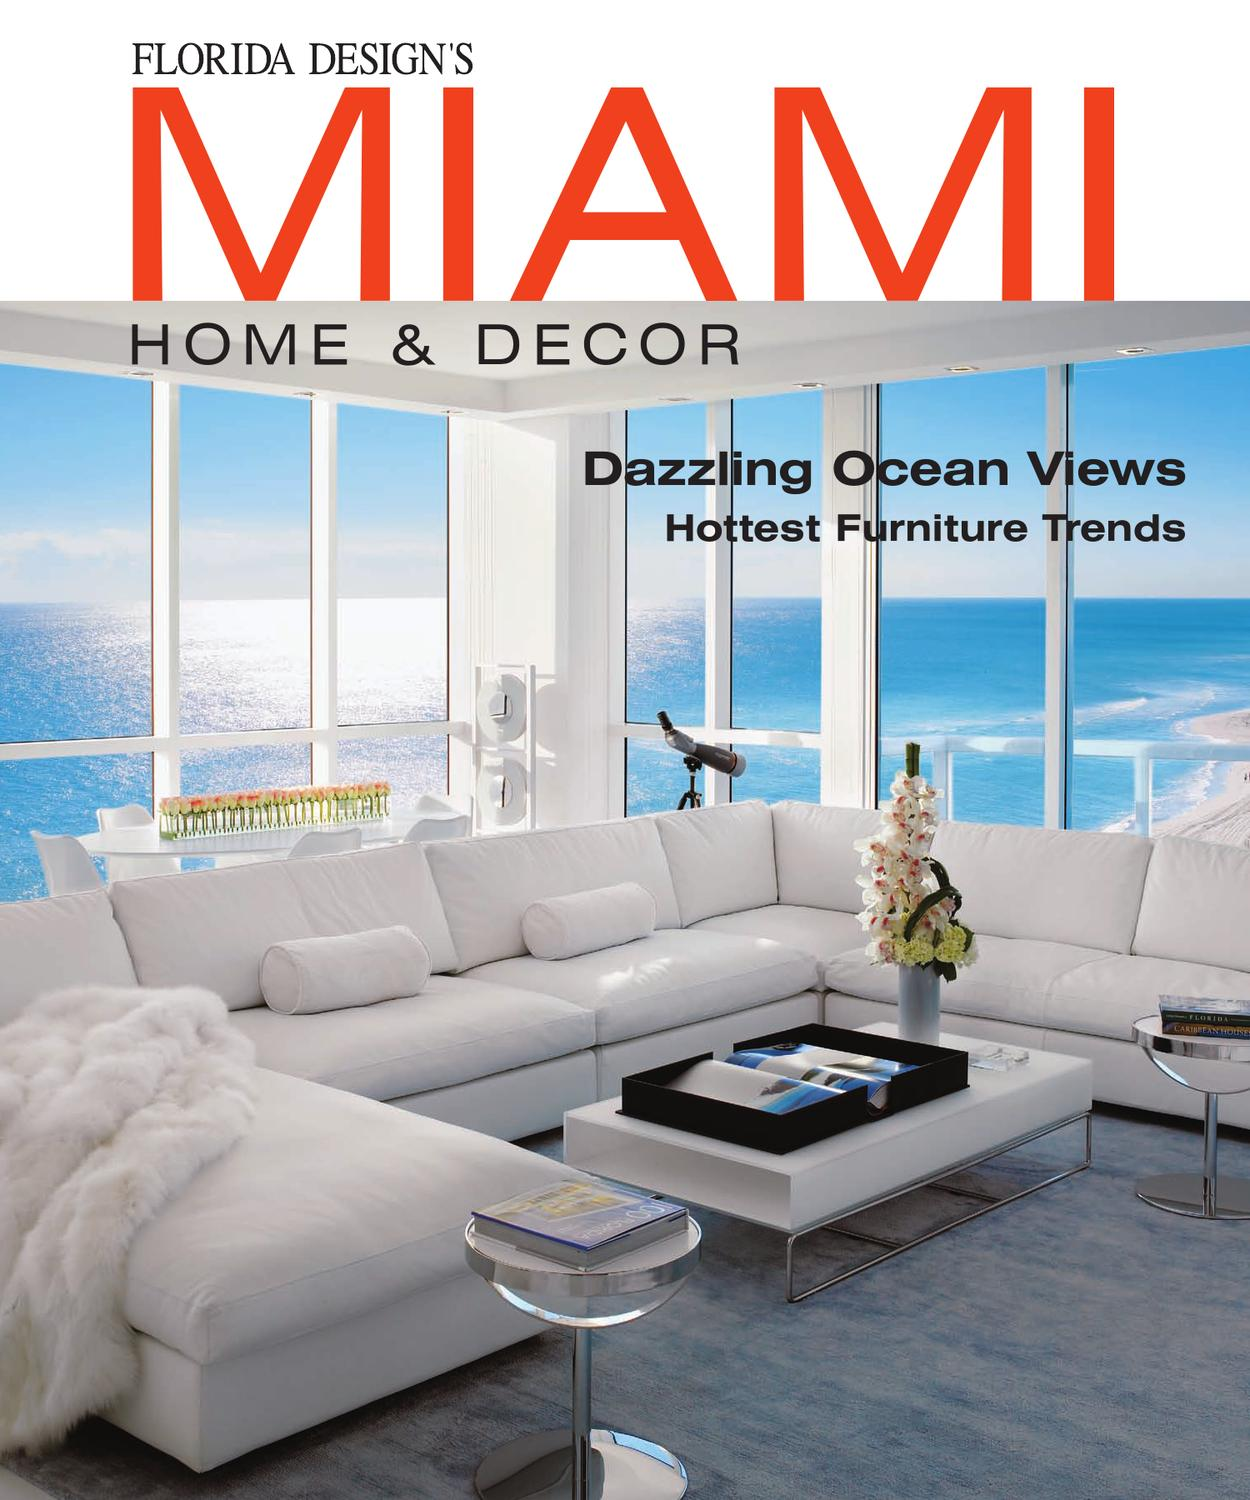 Miami Home & Decor Magazine By Florida Design Inc.